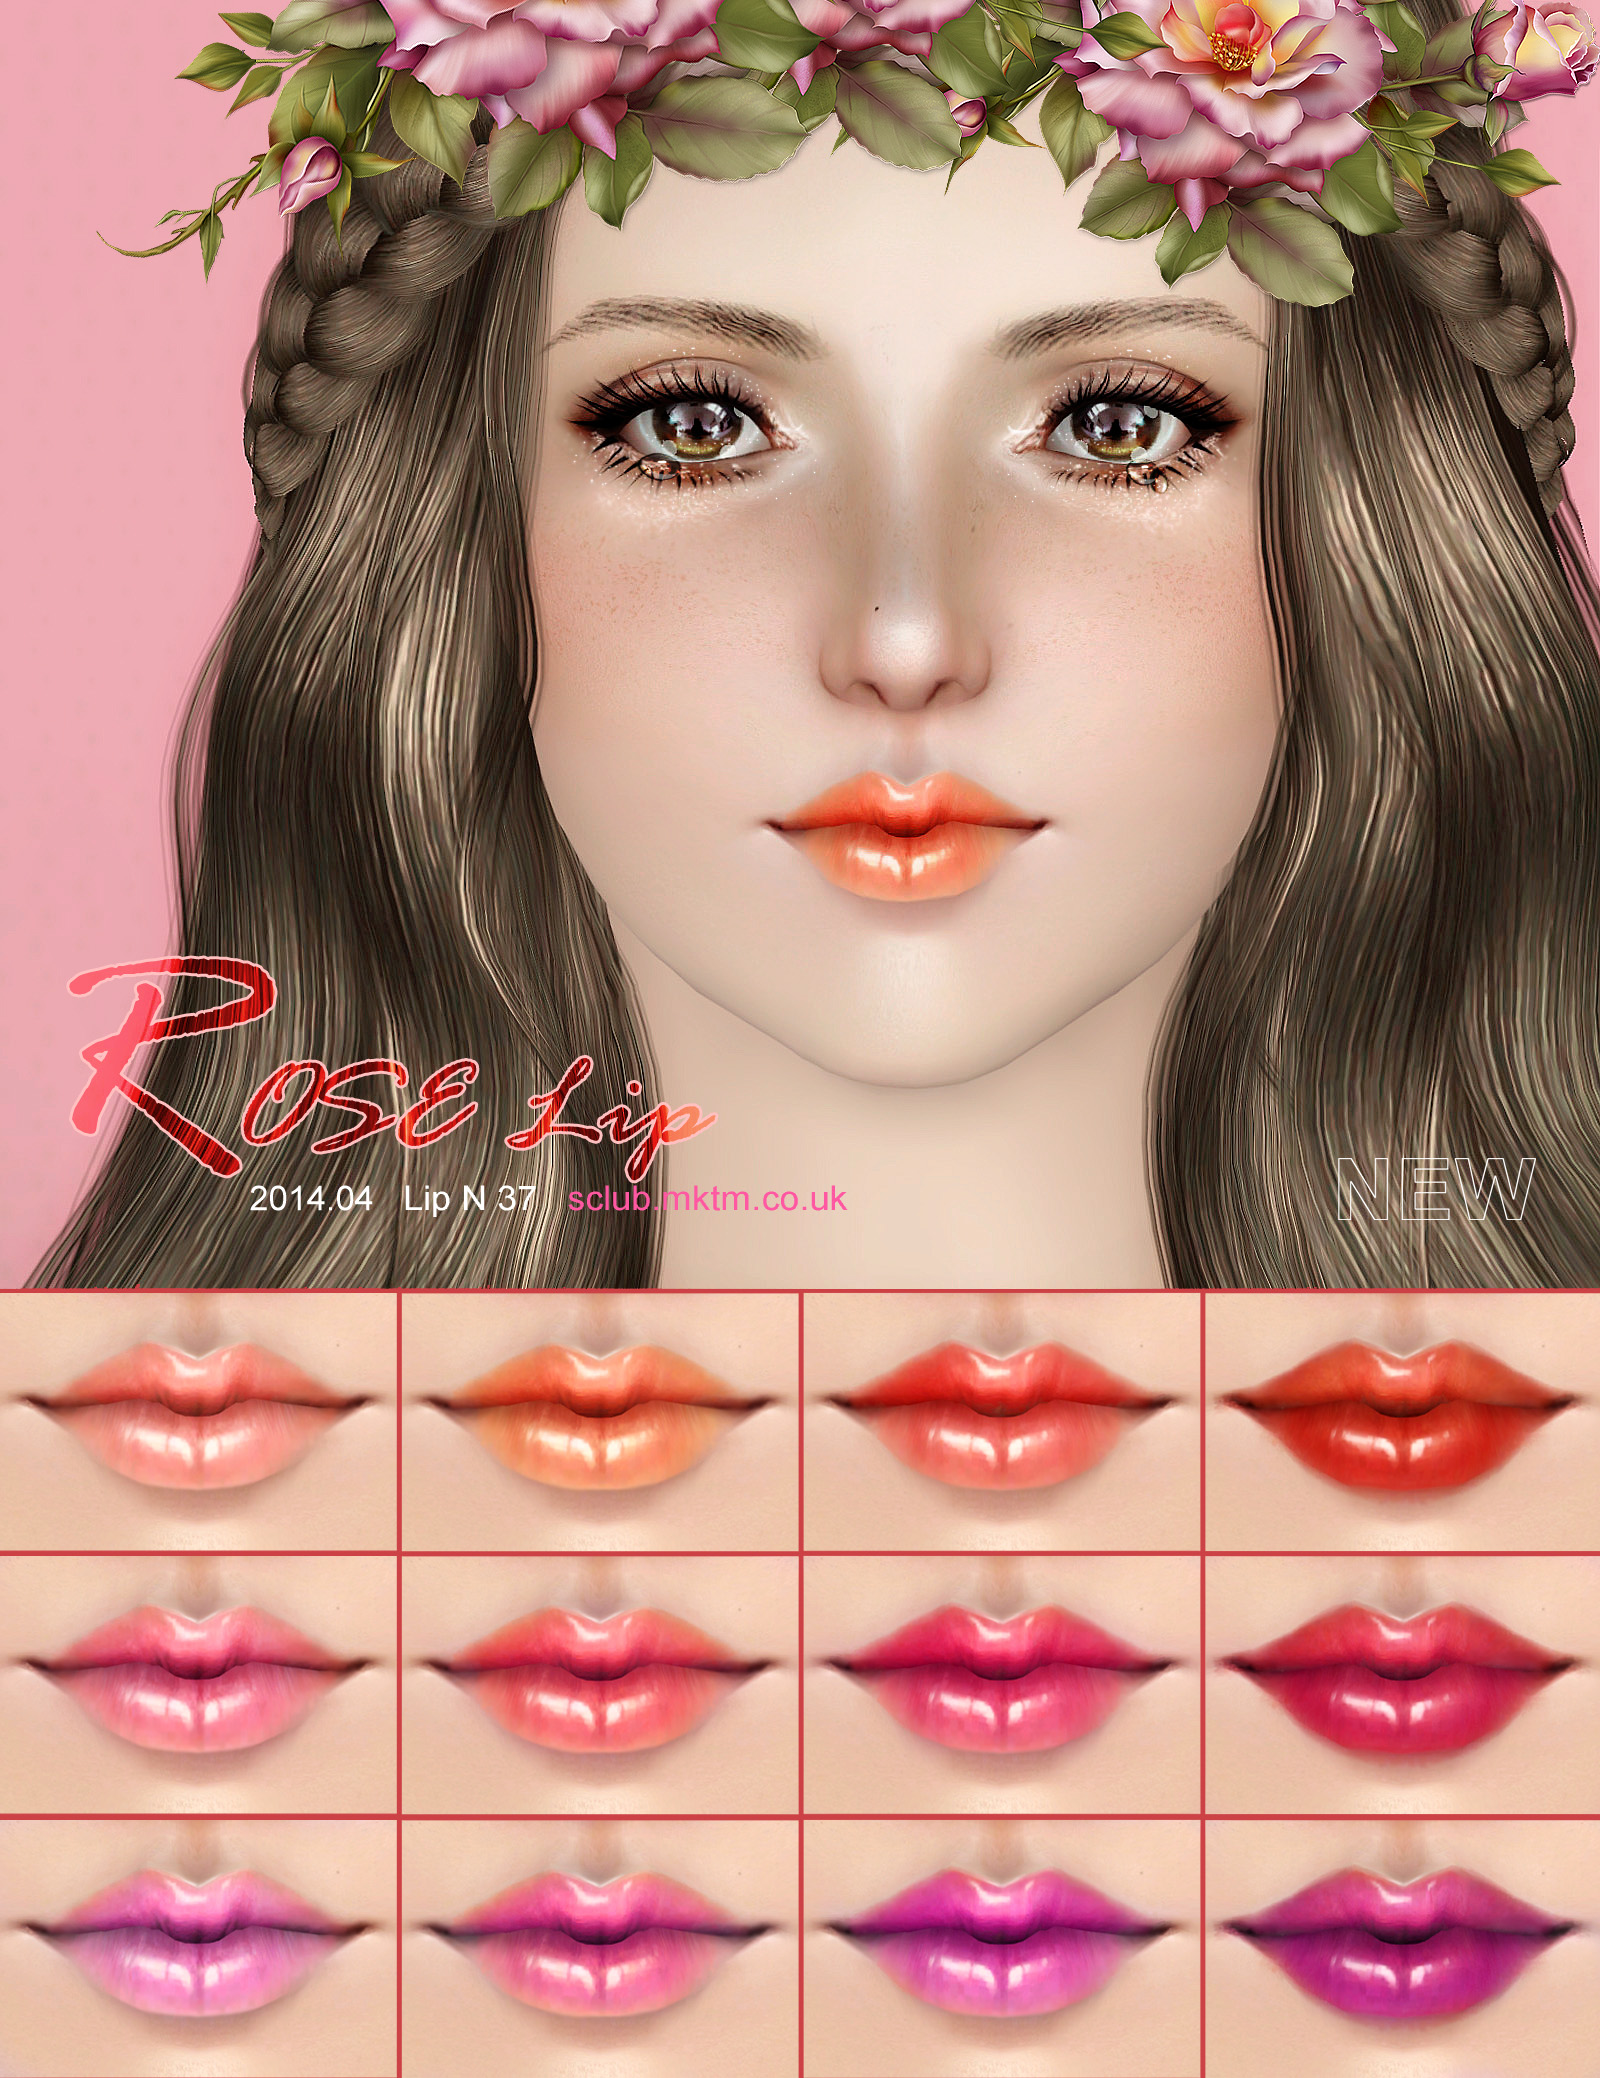 Lipstick N37 by S-Club